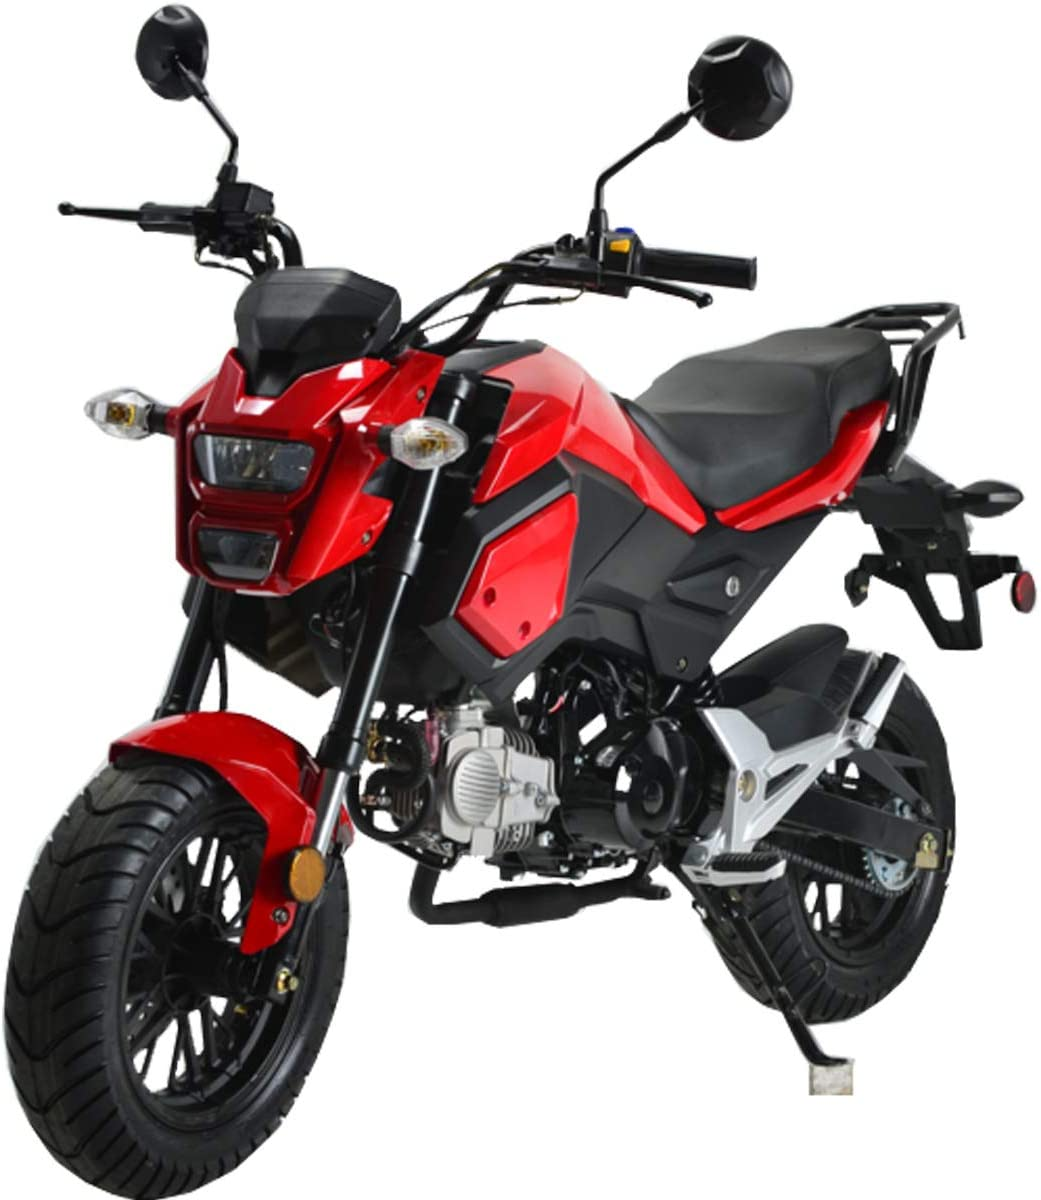 X-PRO 125cc Vader Adult Motorcycle Gas Motorcycle Dirt Motorcycle Street Bike Motorcycle Bike-Red